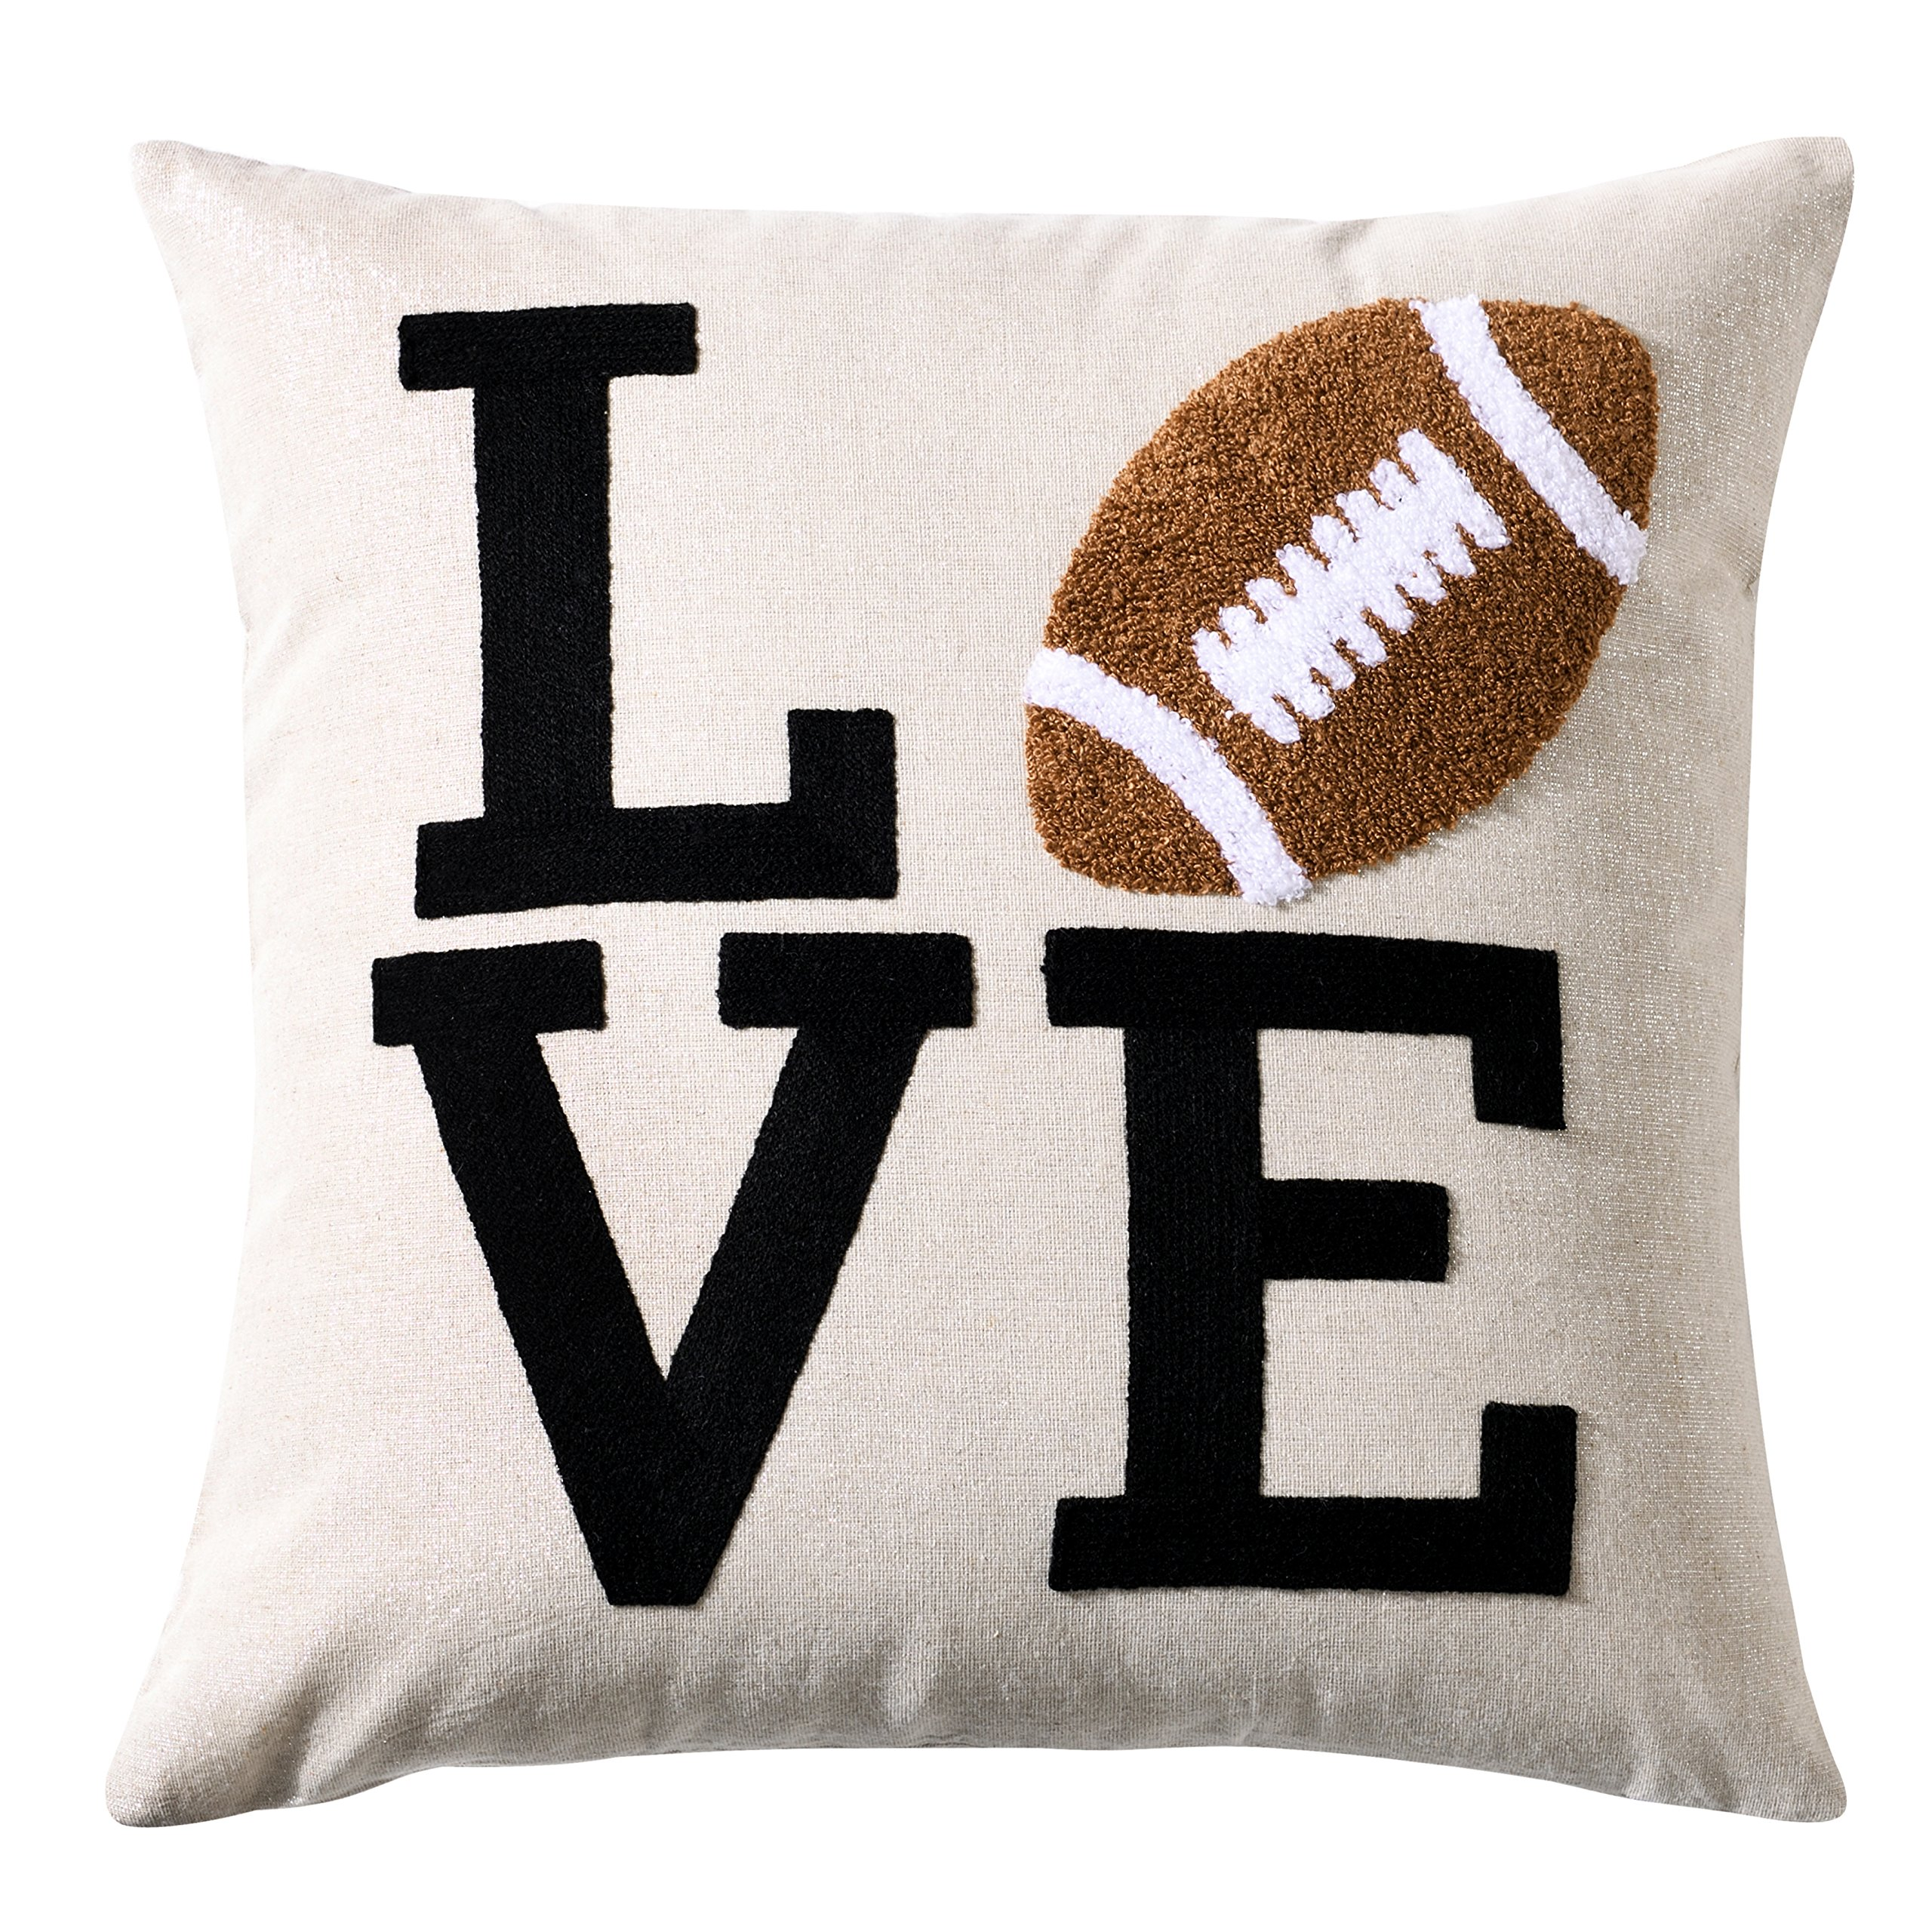 Embroidery Love Sports Series American Football Rugby Decorative Throw Pillow Cover Metallic Silver Linen Cushion Cover Boys Girls NFL Gifts Square 18x18 inch